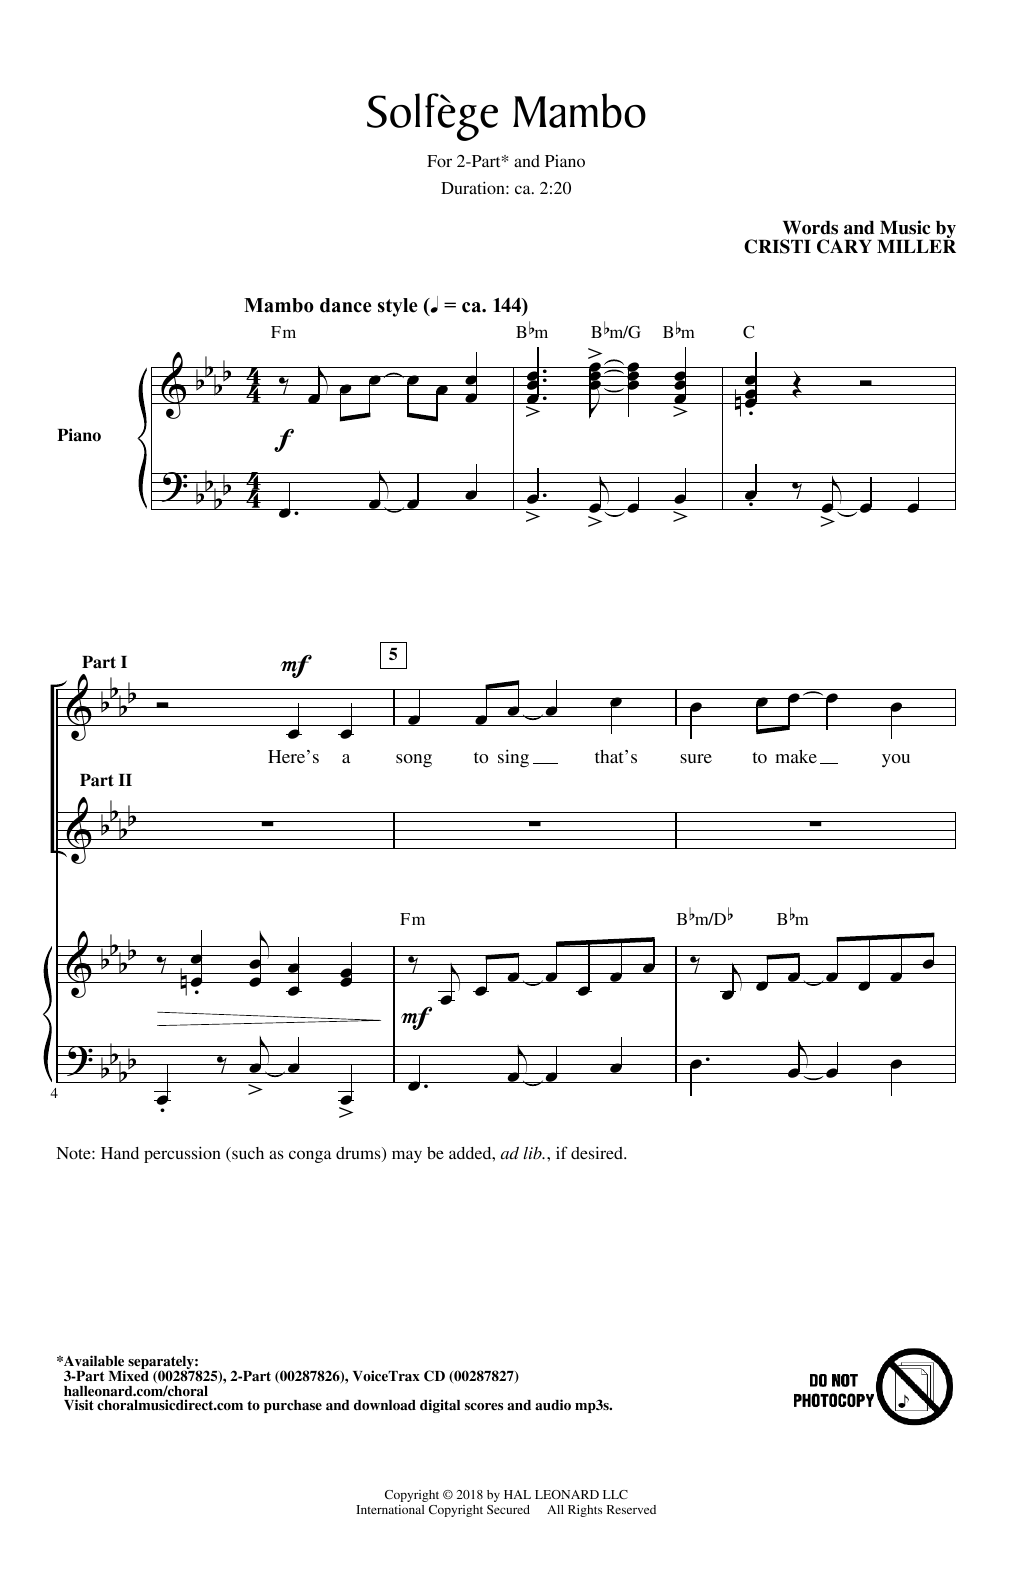 Cristi Cary Miller Solfege Mambo sheet music notes and chords